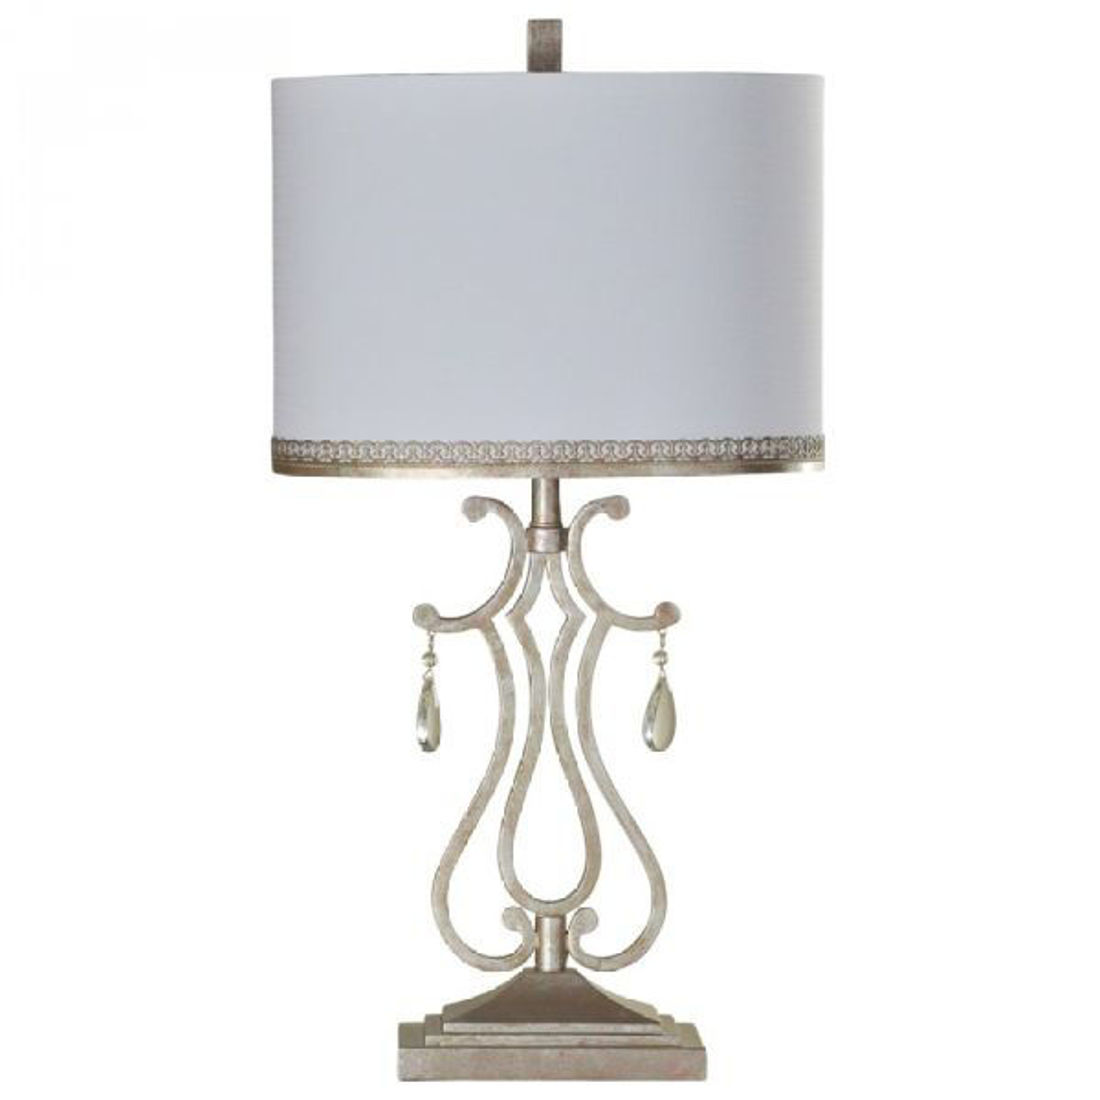 Picture of CYSTAL CREST METAL TABLE LAMP